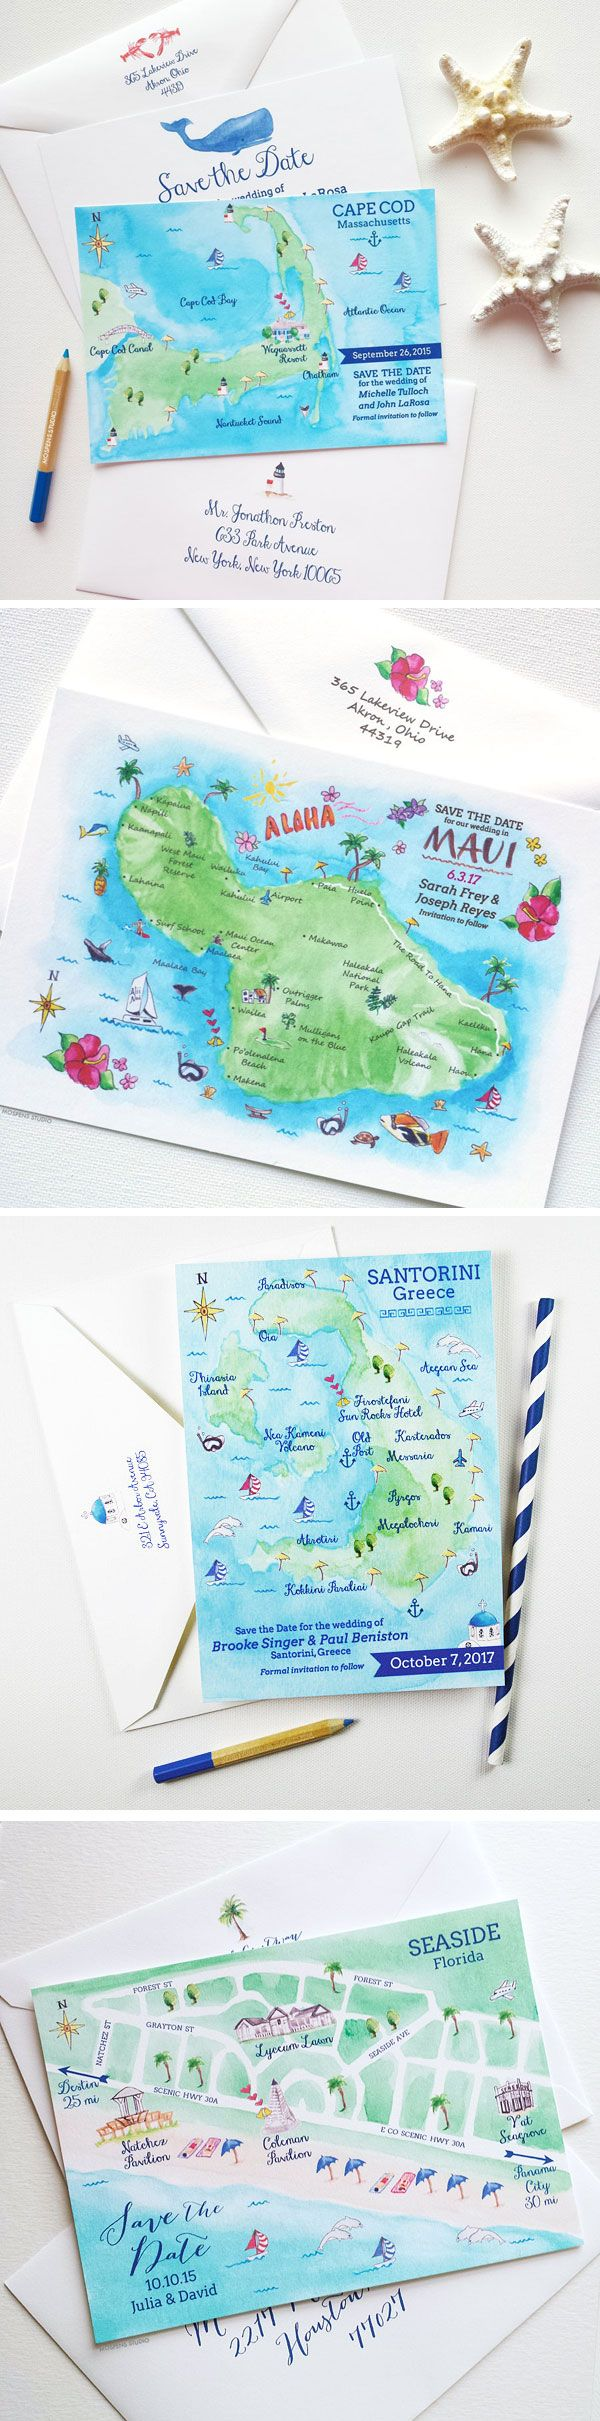 Too cute! Watercolor Map Save The Dates are perfect for destination weddings. 100% Original Art. Greece, Maui Hawaii, Cape Cod, Aruba, Seaside Florida, Key West and Lido Key Florida map save the date designs now available! - www.mospensstudio.com